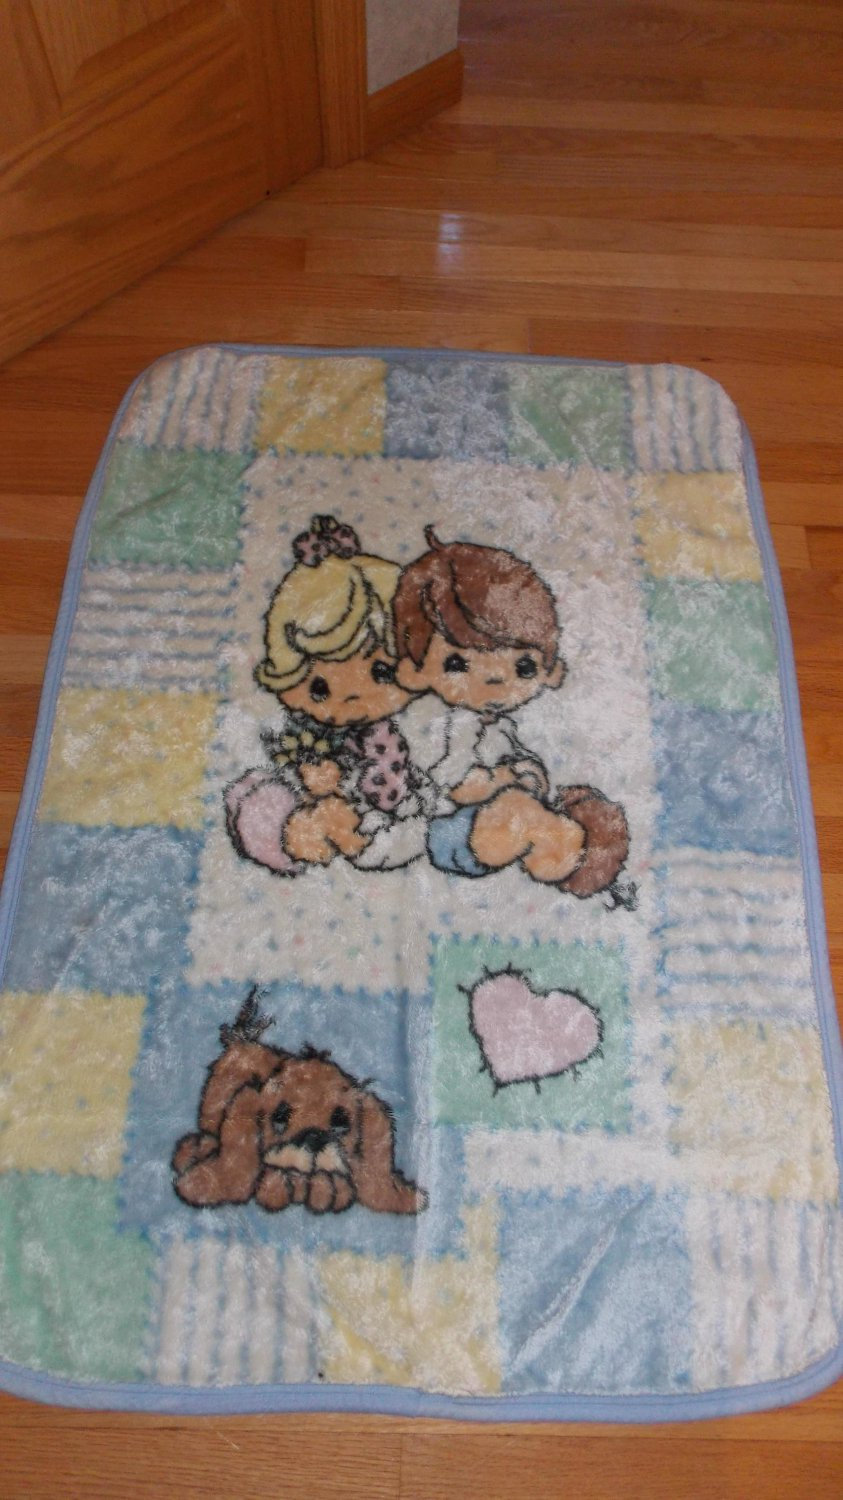 Enesco Precious Moments Plush Luxe Thick Baby Blanket Boy Girl Puppy Dog Heart Patchwork